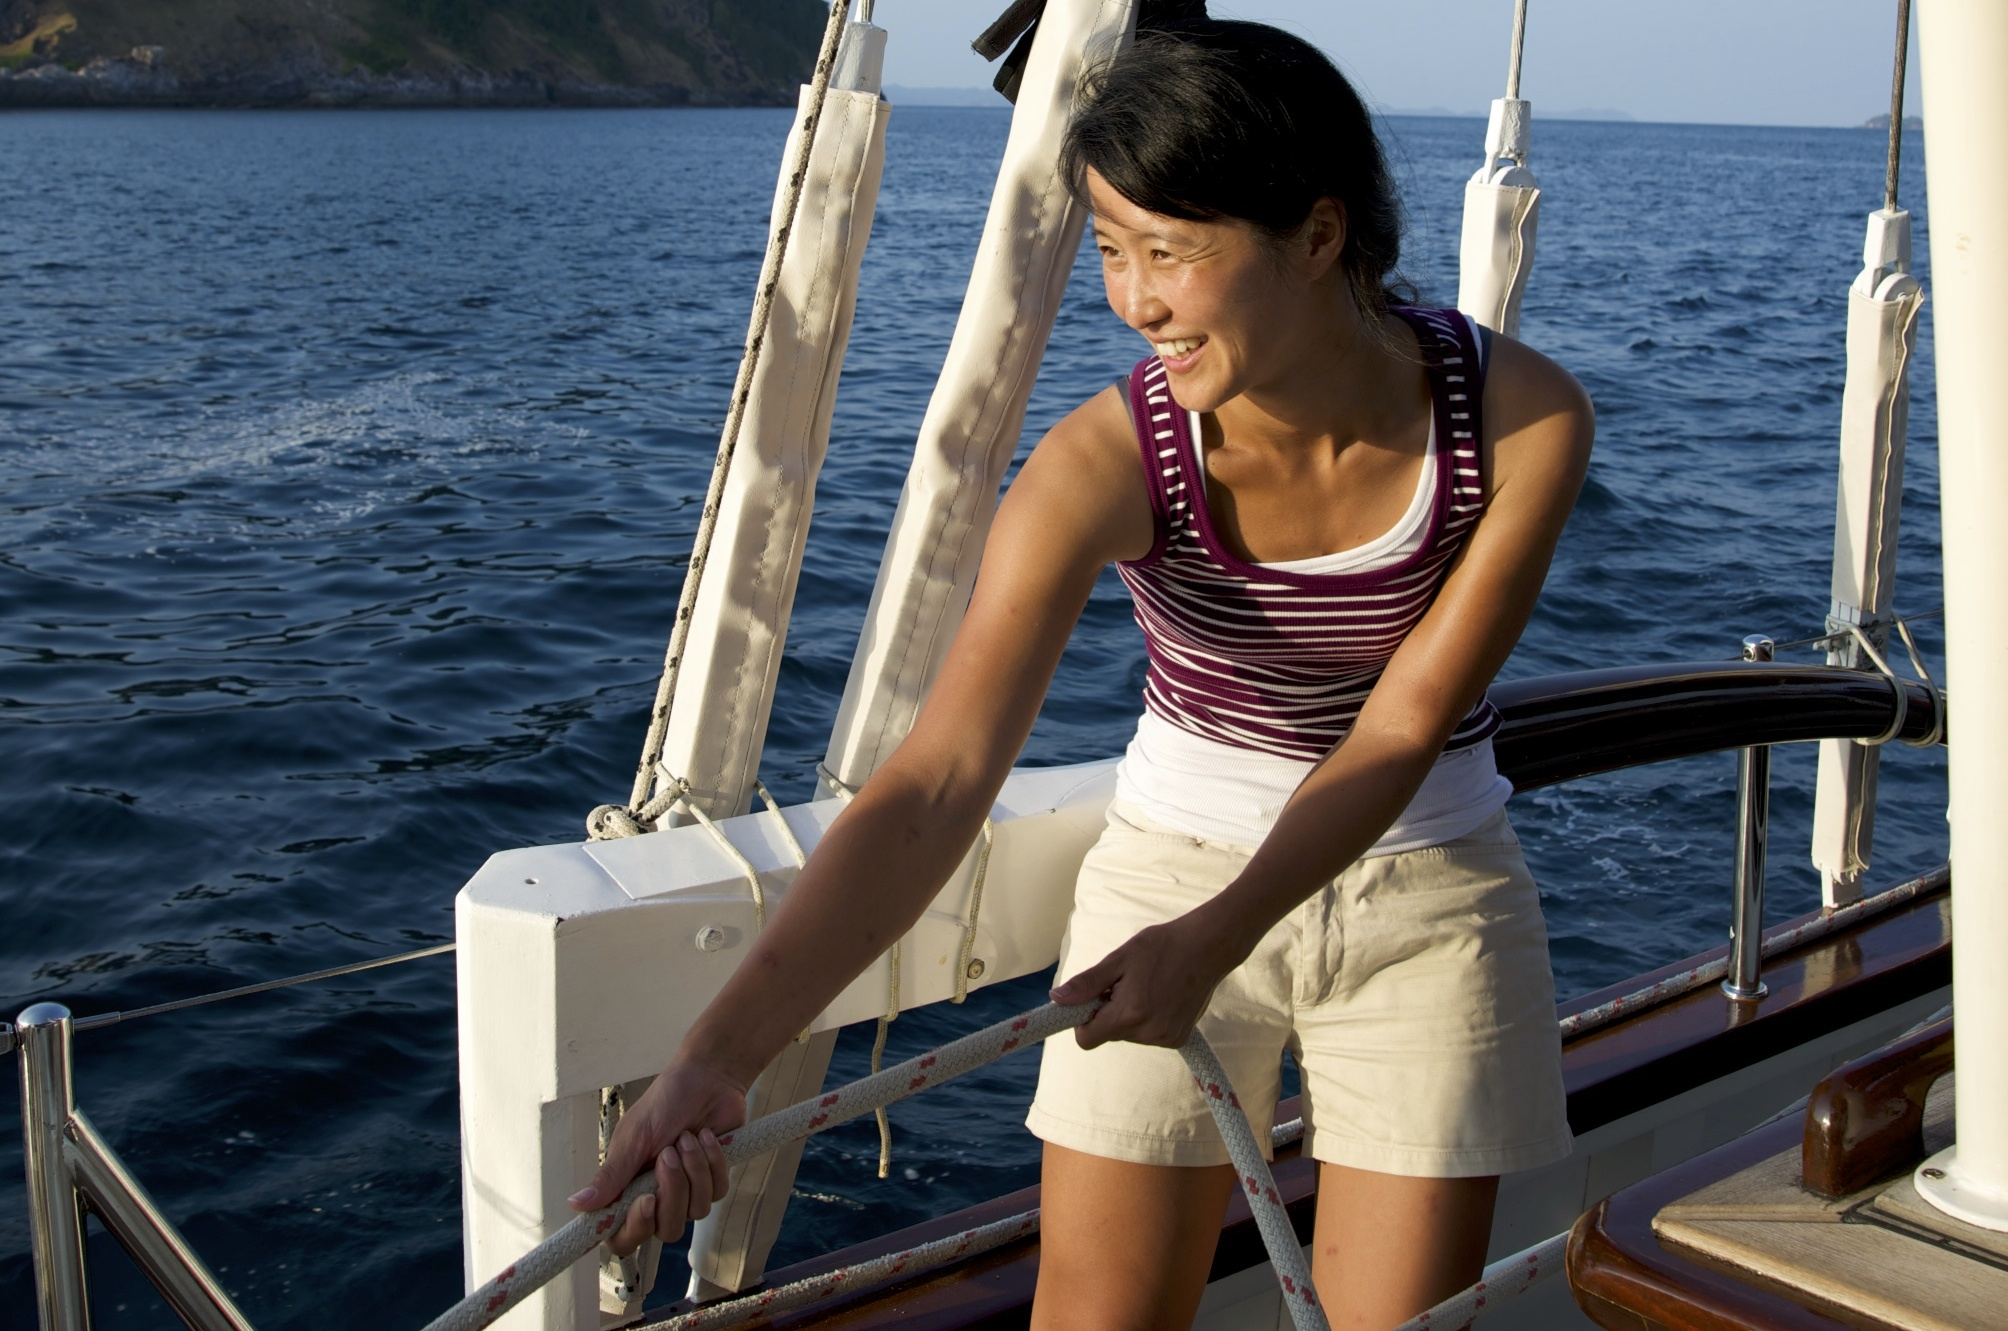 learn-sailing-on-a-charter-yacht-in-myanmar-burma.jpg